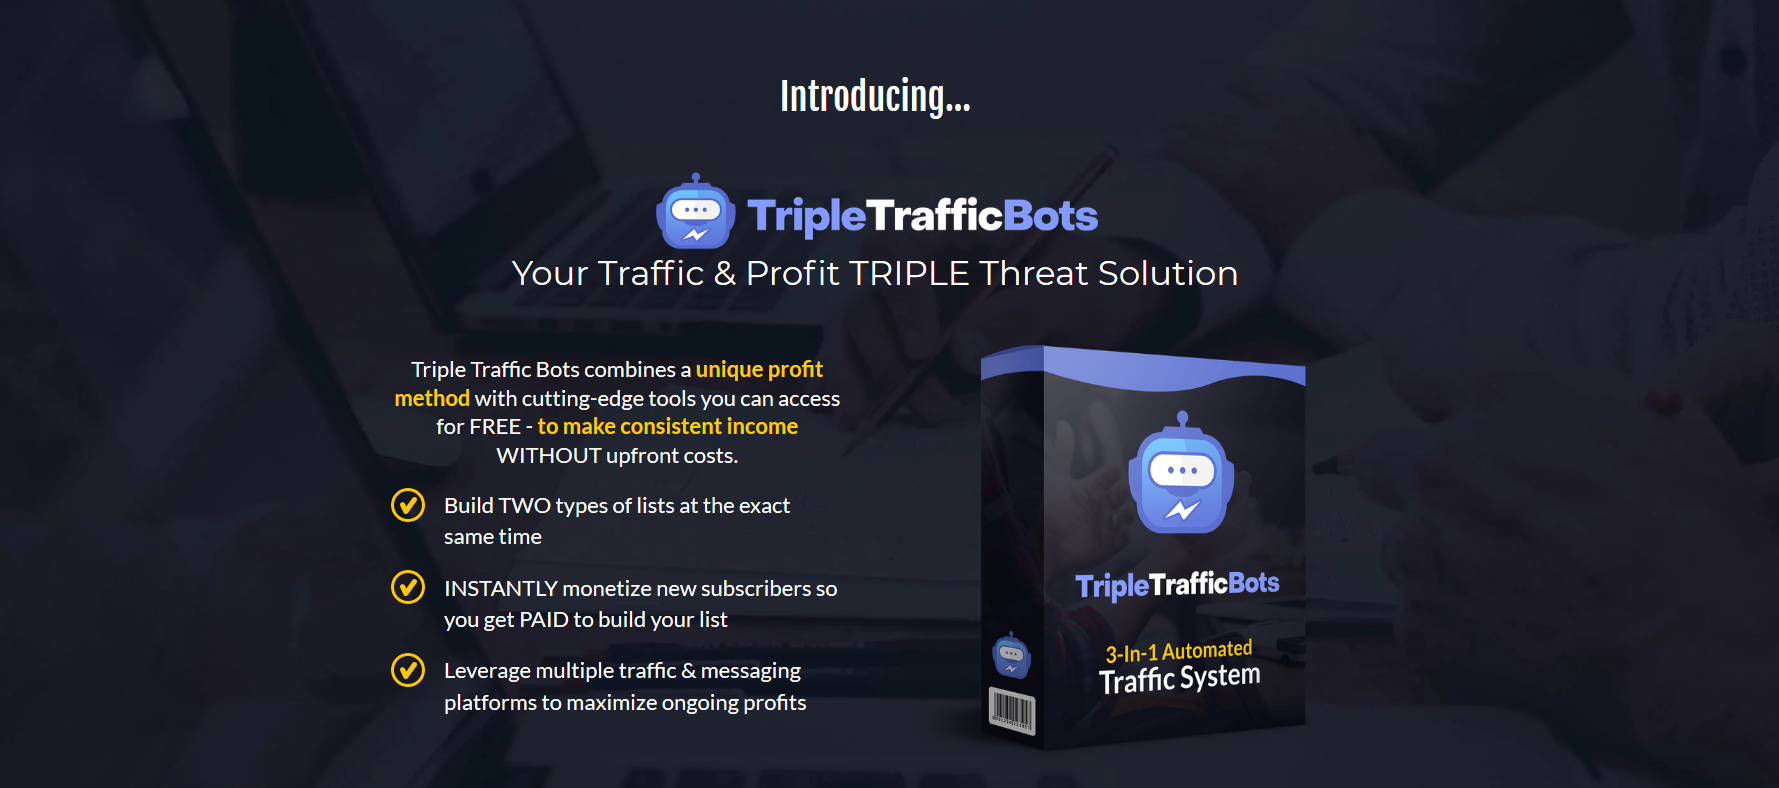 "Newbie Friendly Automated Traffic System... Bank 3+ Figure DAILY Profits With 100% FREE Tools Generate Traffic, Leads, Sales & Affiliate Commissions - USING 100% FREE TOOLS! ZERO Additional Costs! Instant Commissions As Early As Tonight! POST LAUNCH PRICE FREEZE ACTIVATED! ACTIVATE COUPON ""VIPFIVE"" TO SAVE $5 ===>> CLICK TO TURN THE SOUND ON & WATCH THIS VIDEO"